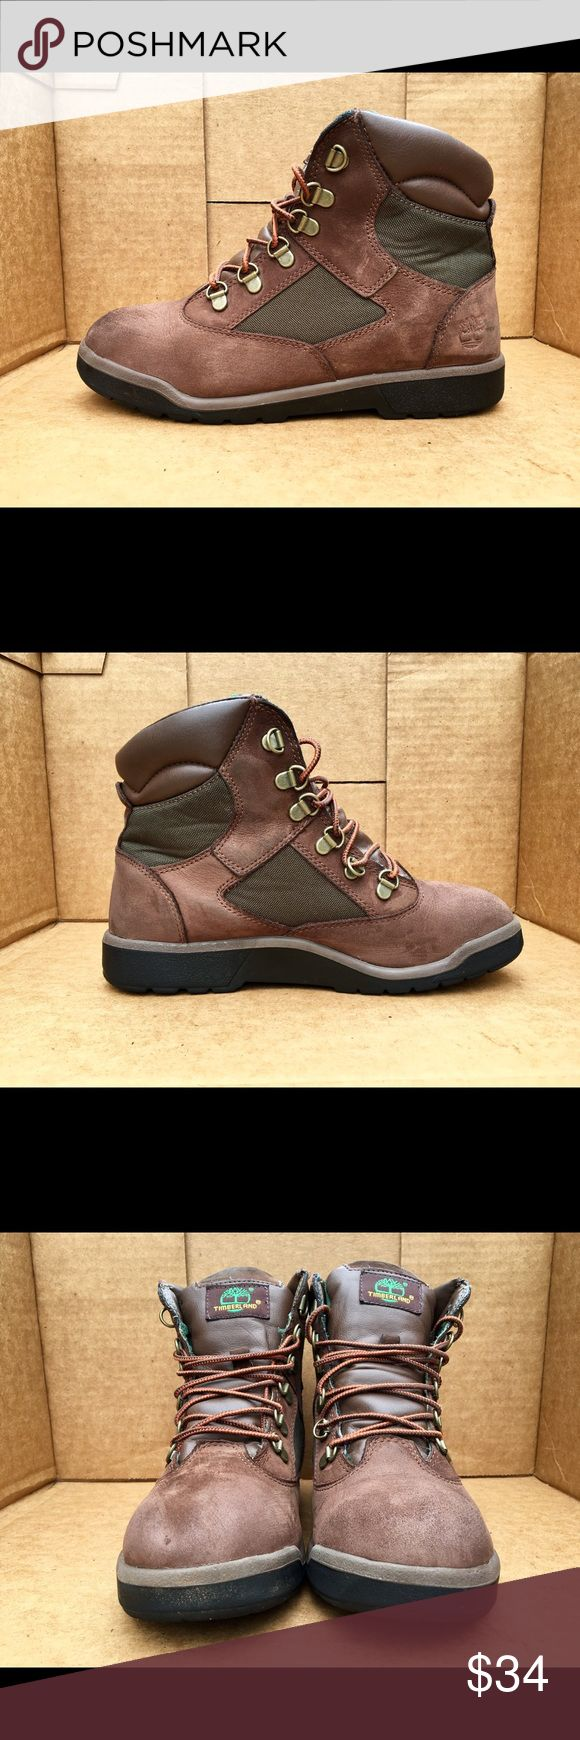 Kids Timberland field boots size 6 Great condition. Very small Toe scuff as shown. Timberland Shoes Boots